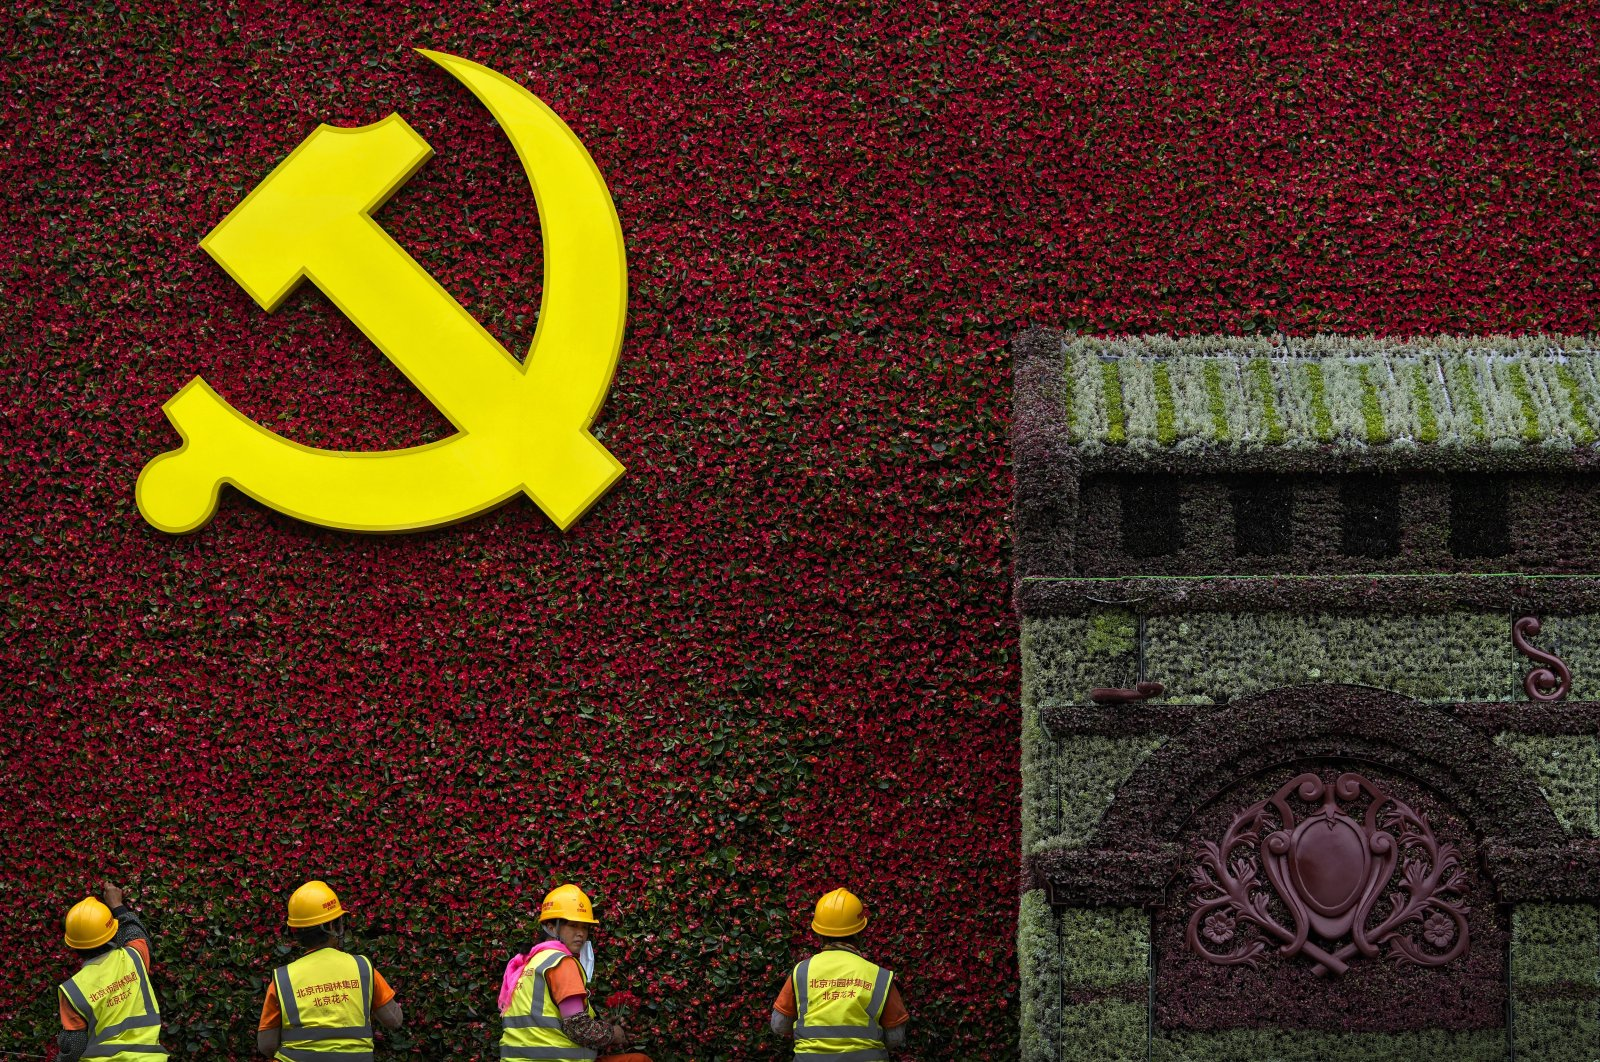 Workers install flowers on a decoration with the Communist Party's logo in Beijing, China, June 16, 2021. (AP Photo)